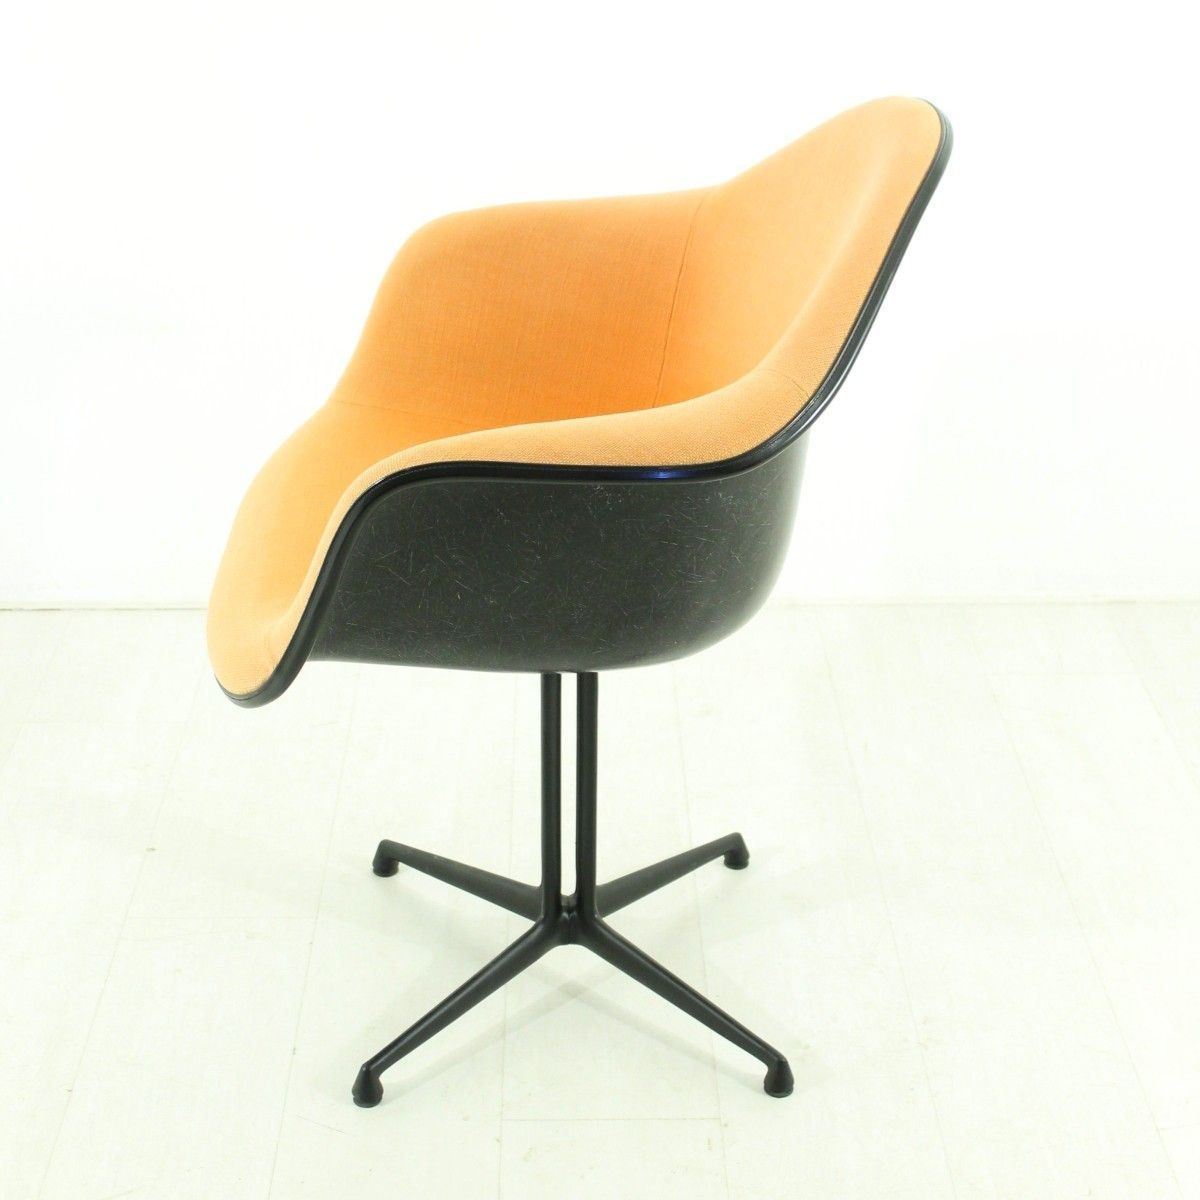 vintage terracotta la fonda chair by charles ray eames for vitra for sale at pamono. Black Bedroom Furniture Sets. Home Design Ideas